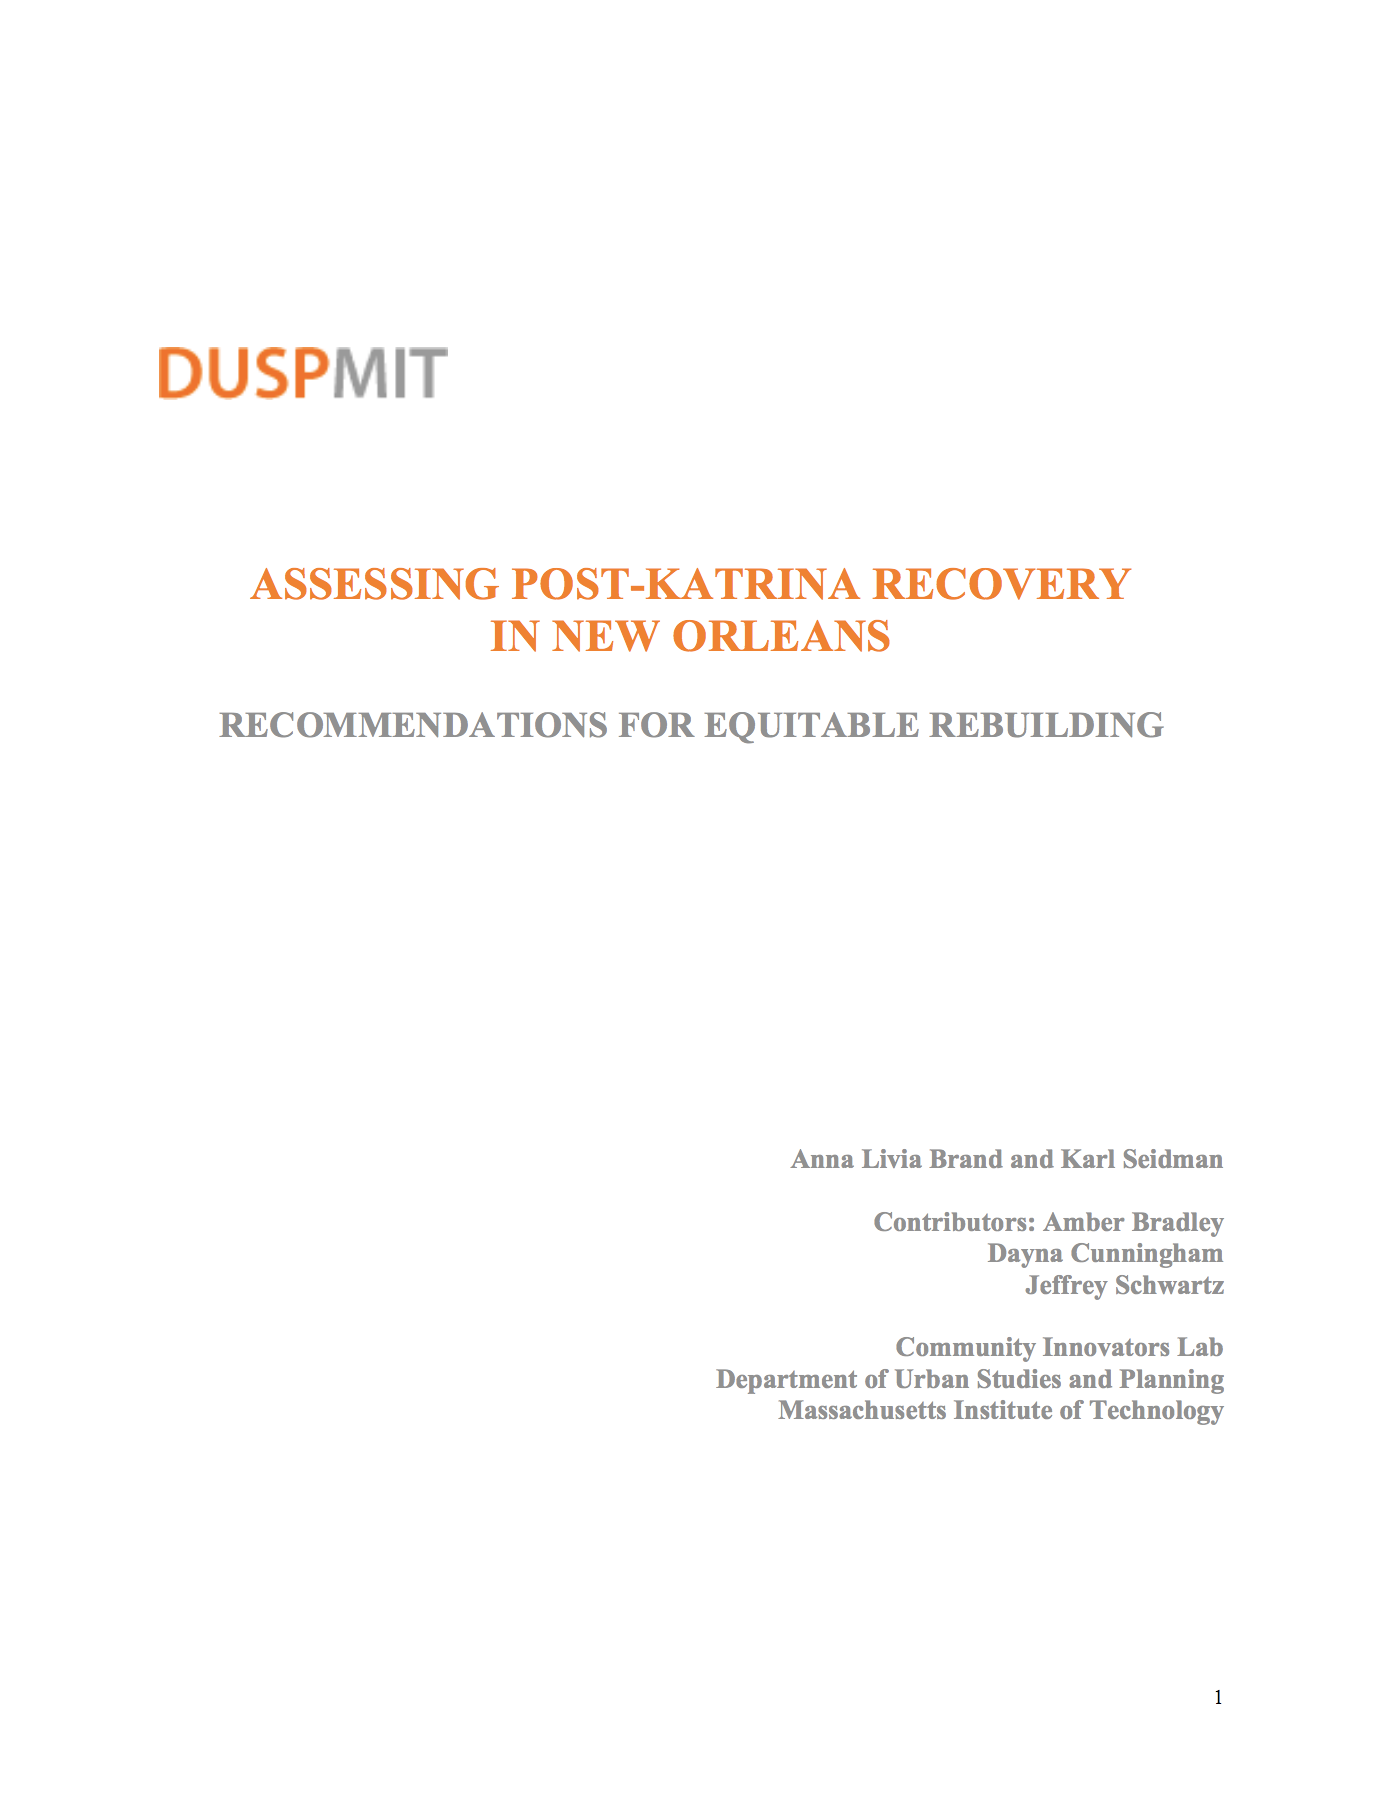 Assessing Post-Katrina Recovery in New Orleans - Recommendations for Equitable Rebuilding.png